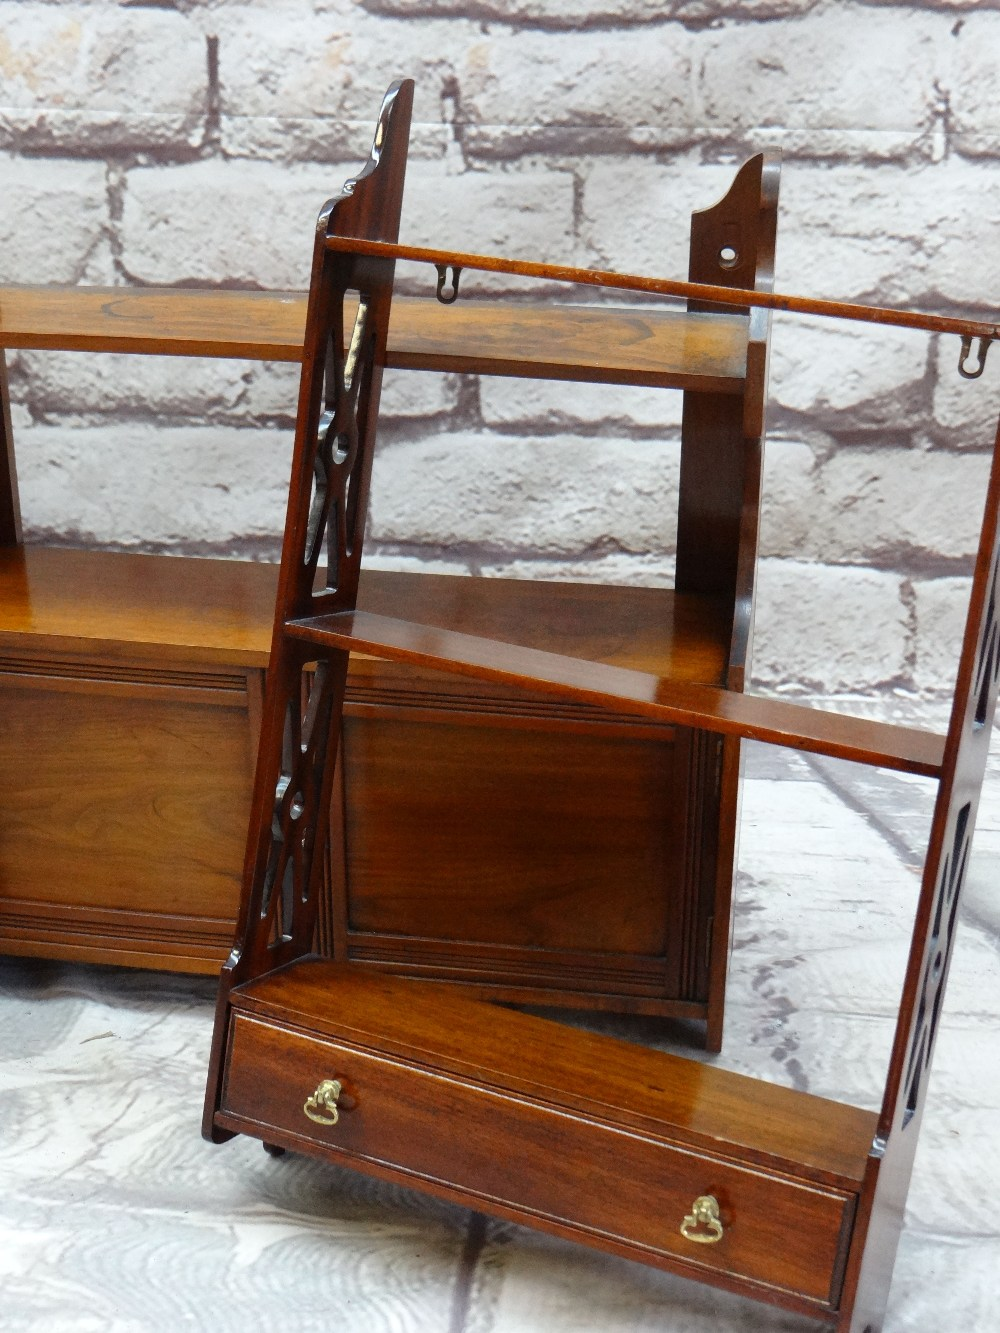 ASSORTED OCCASIONAL FURNITURE, including a Chinese black lacquer table casket, two small hanging - Image 3 of 3